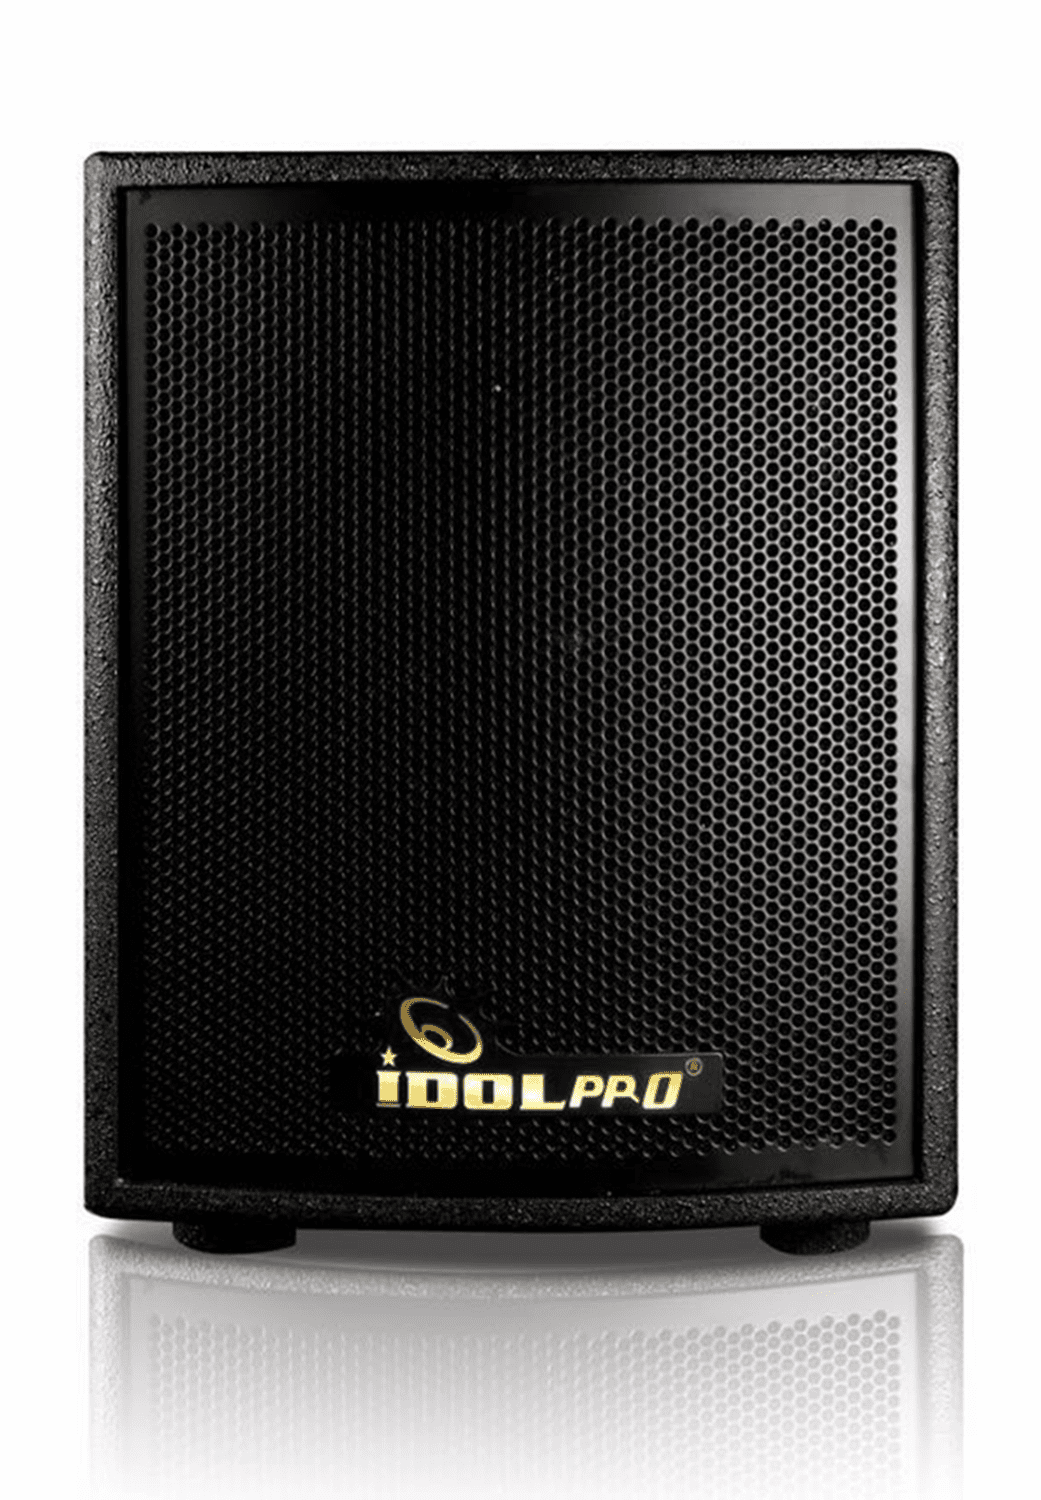 "IDOLpro SUB-5 500W 12"" Active Powered Subwoofer"